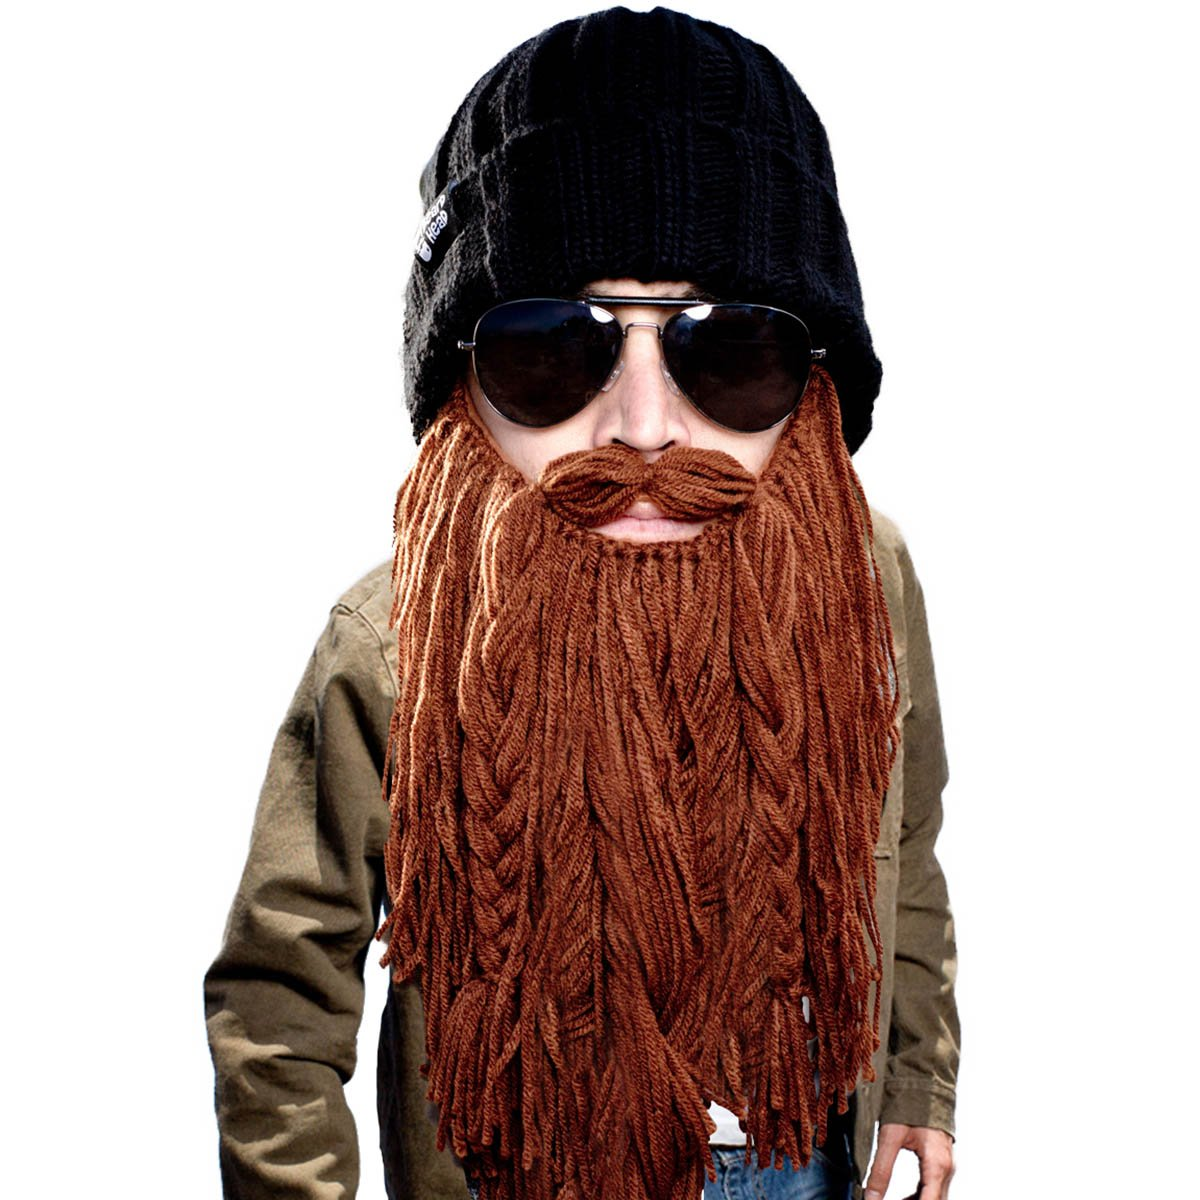 c7ec43096df THE ORIGINAL BARBARIAN ROADIE BEARD HAT ❅ – The award-winning